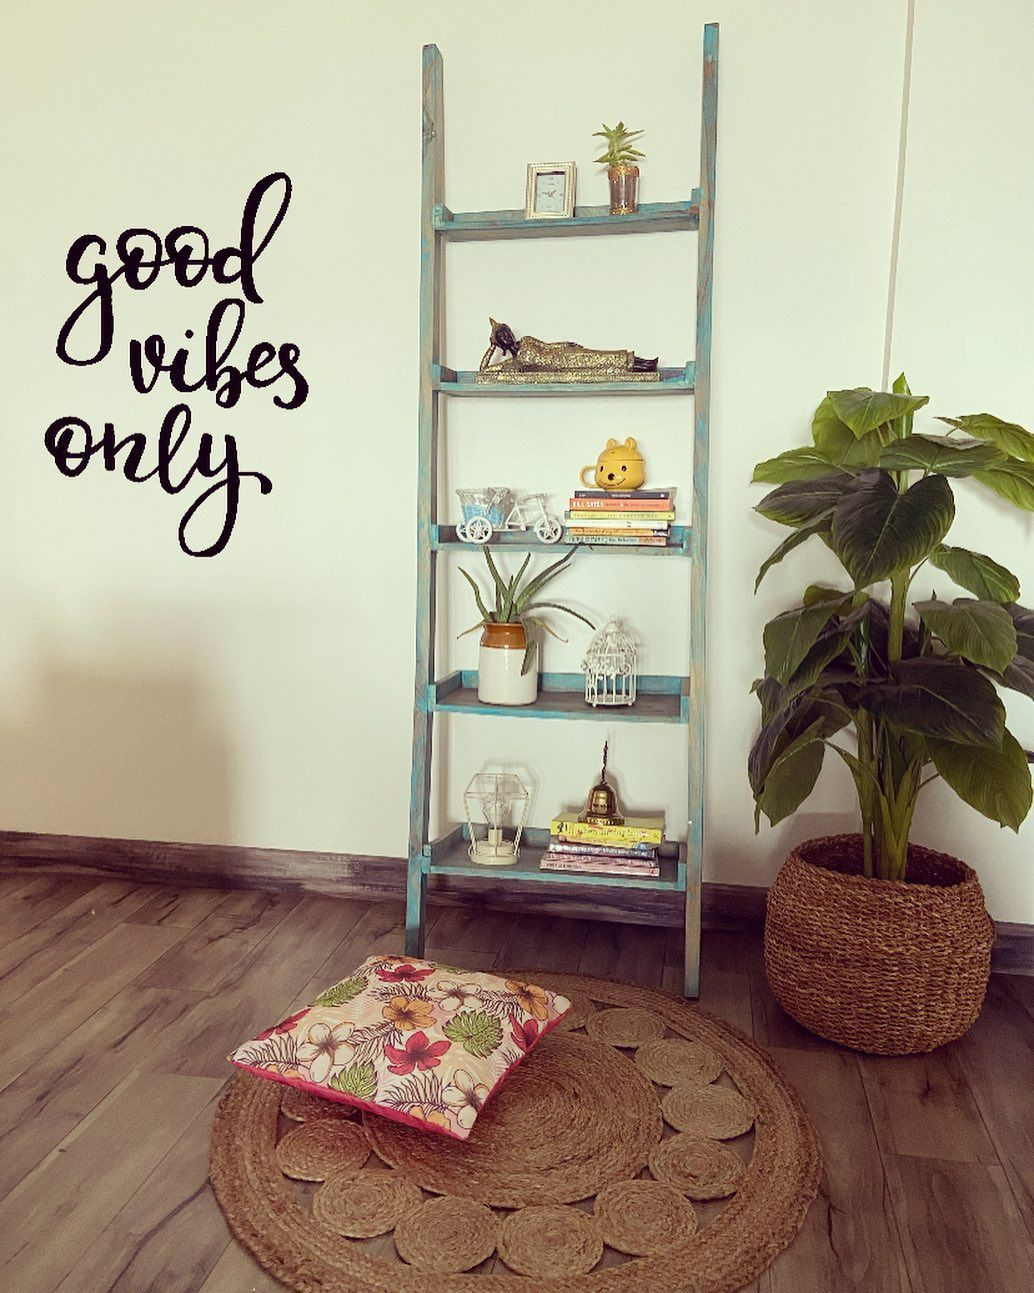 Good vibes only #laddershelf styling  Tips : *Stack some  books * You can add art or your personal touches *Vary height of objects *Plants can add texture to your space &  some boho feels adding wicker basket and rug  #interiordesign #design #interior #homedecor #architecture #home #decor #interiors #art #homedesign #interiordesigner #interiorstyling  #laddershelf #decorinspo#bohostyle #bohodecor #instagood #style #likeforlike #likeforfollow #followback #followforfollow #Style&spaces